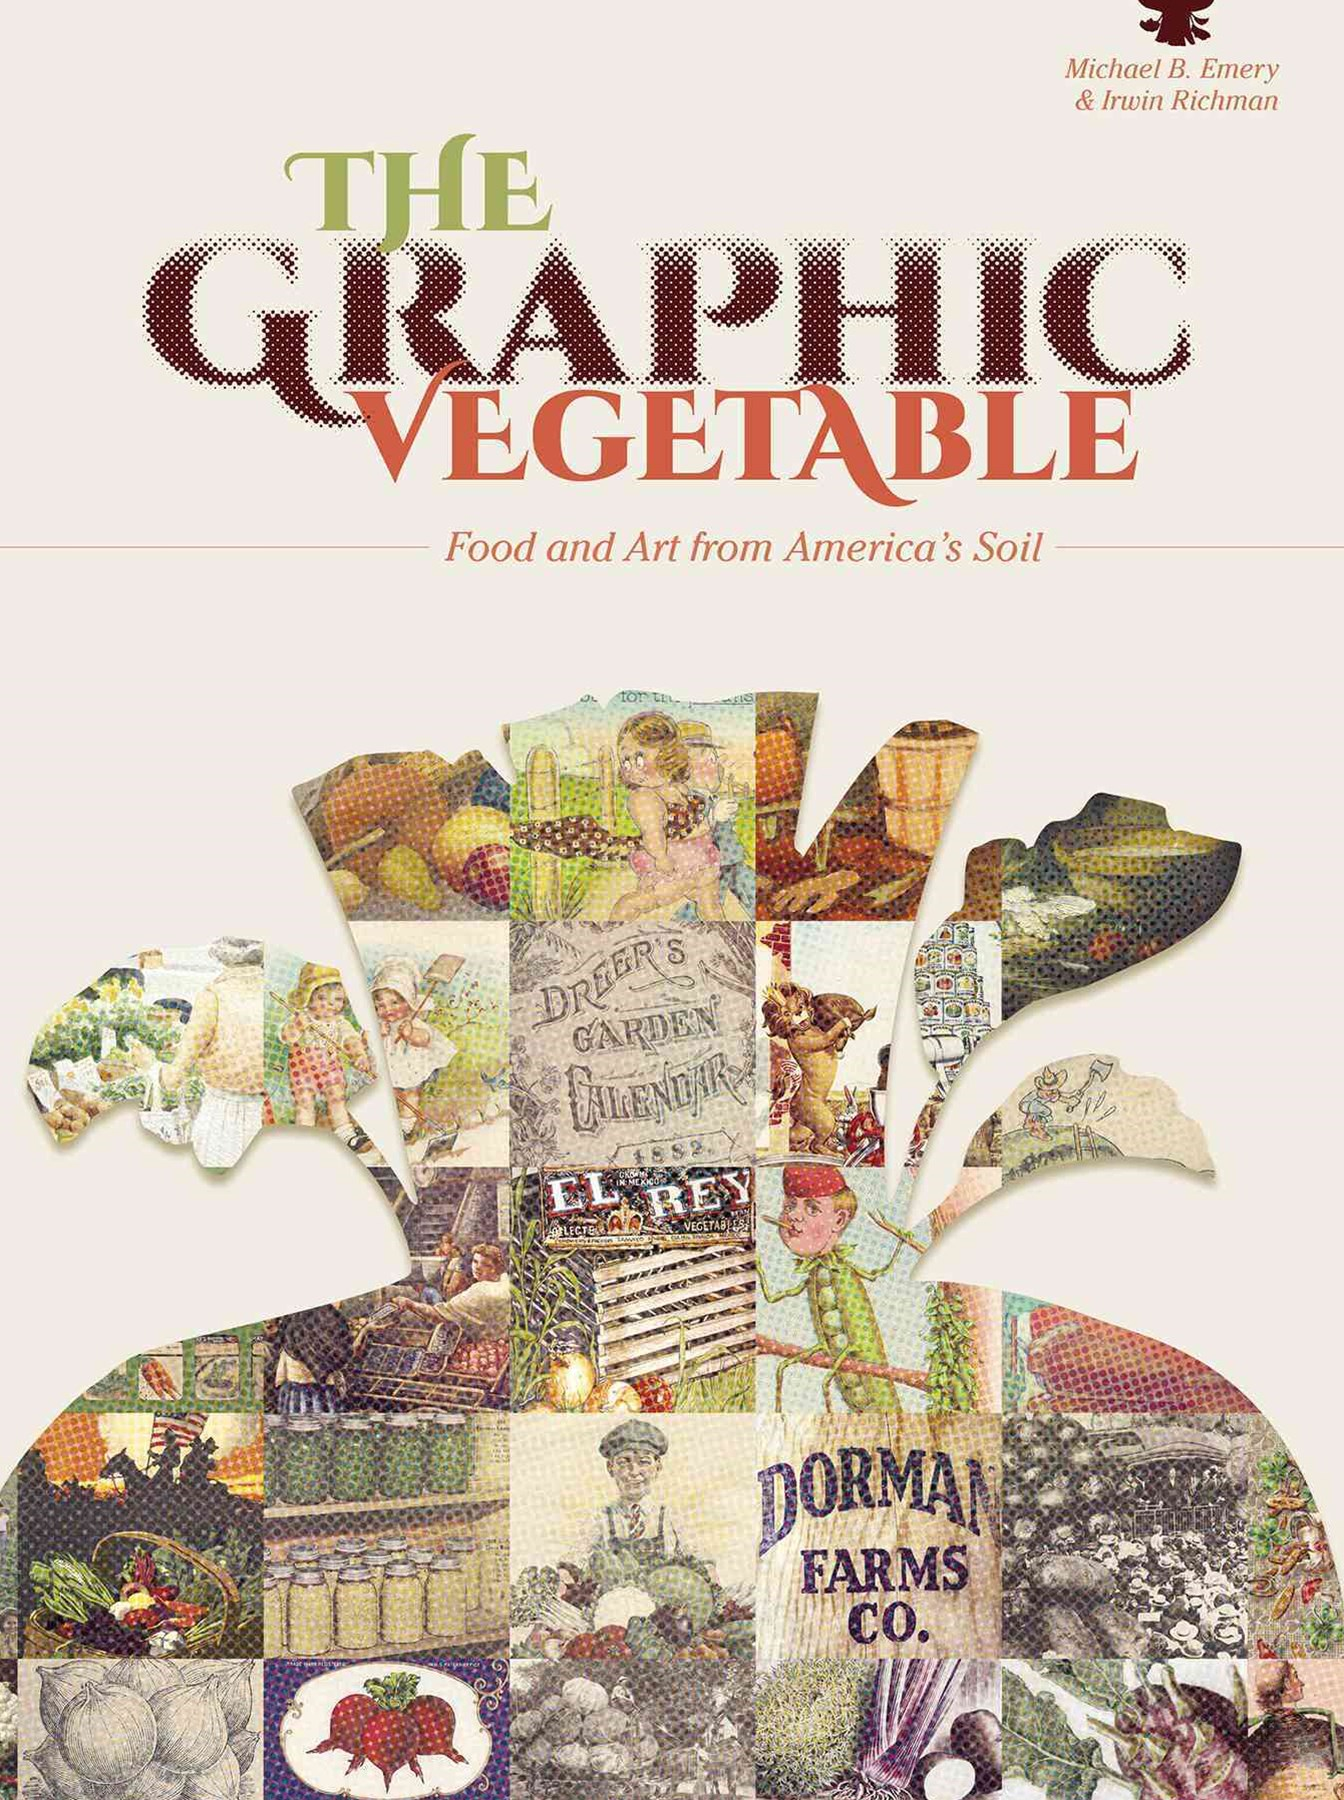 Graphic Vegetable: Food and Art from America's Soil